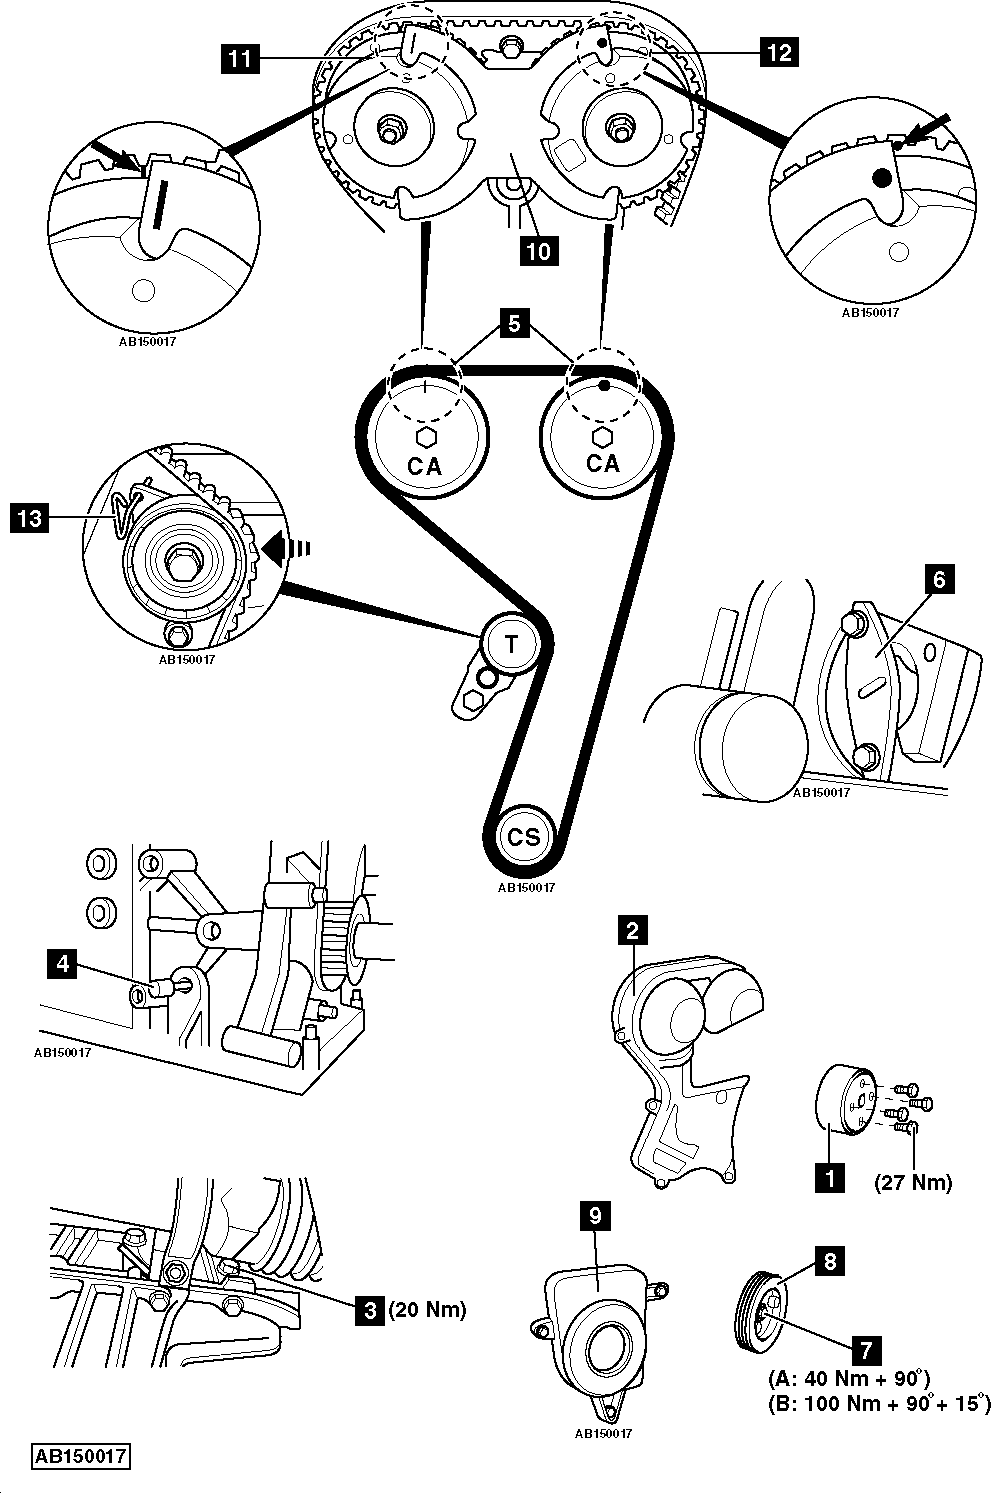 Ktm 250 Sx Wiring Diagram On 2014 350 Honda Cr250r Wiring